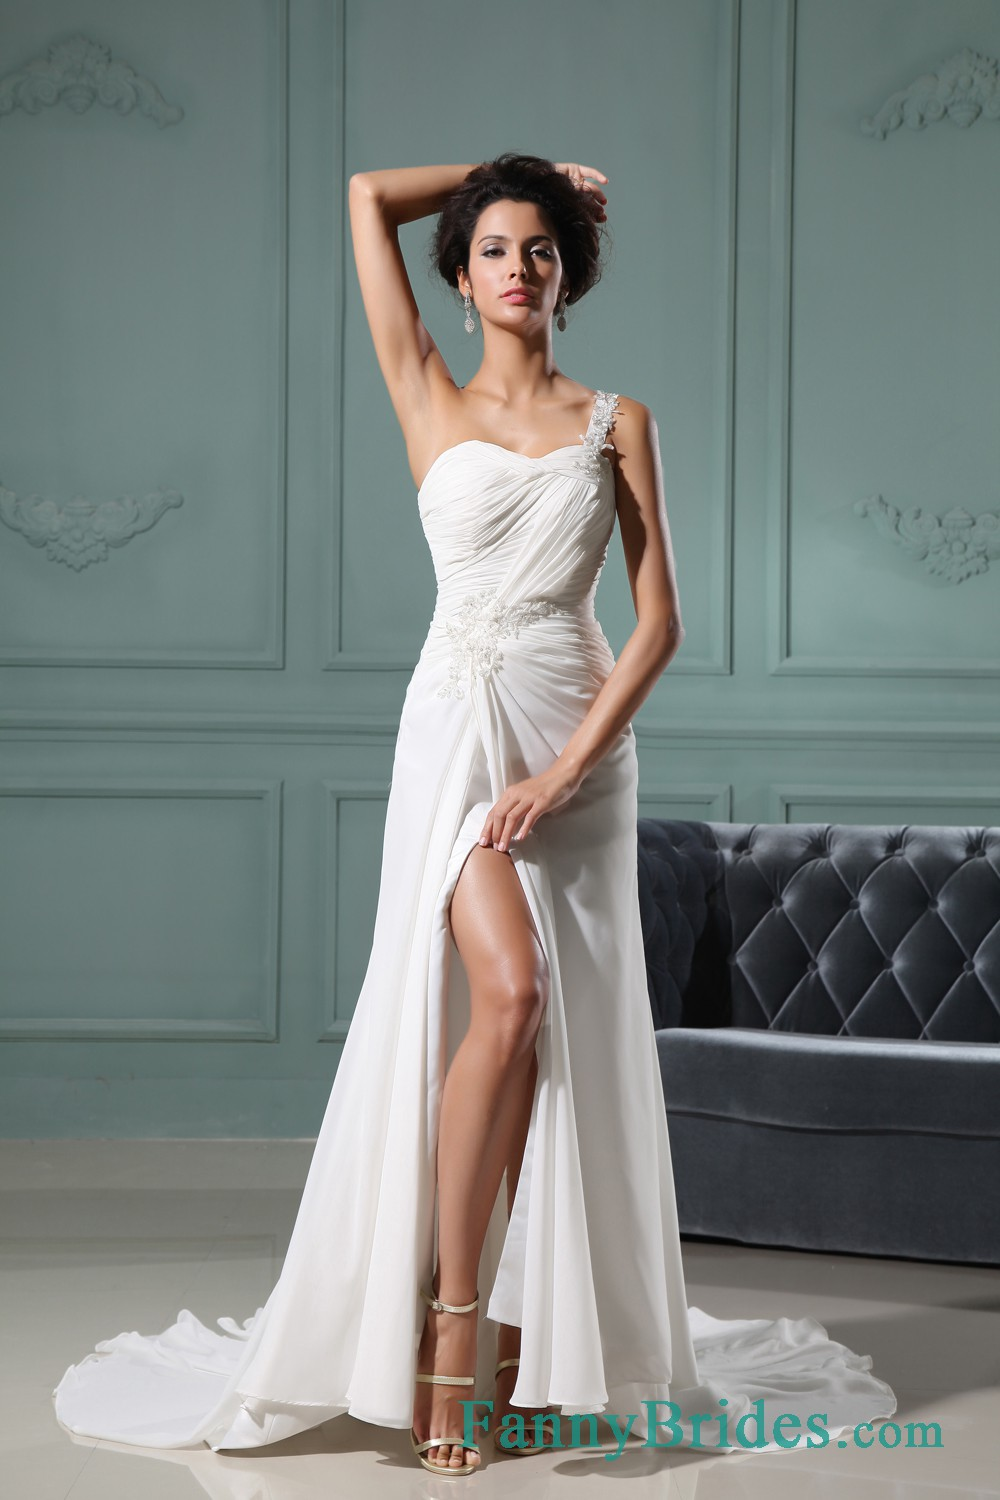 Three Types Of Wedding Dress Suppliers In Suzhou By Sandy Medium,Casual Fall Dresses To Wear To A Wedding